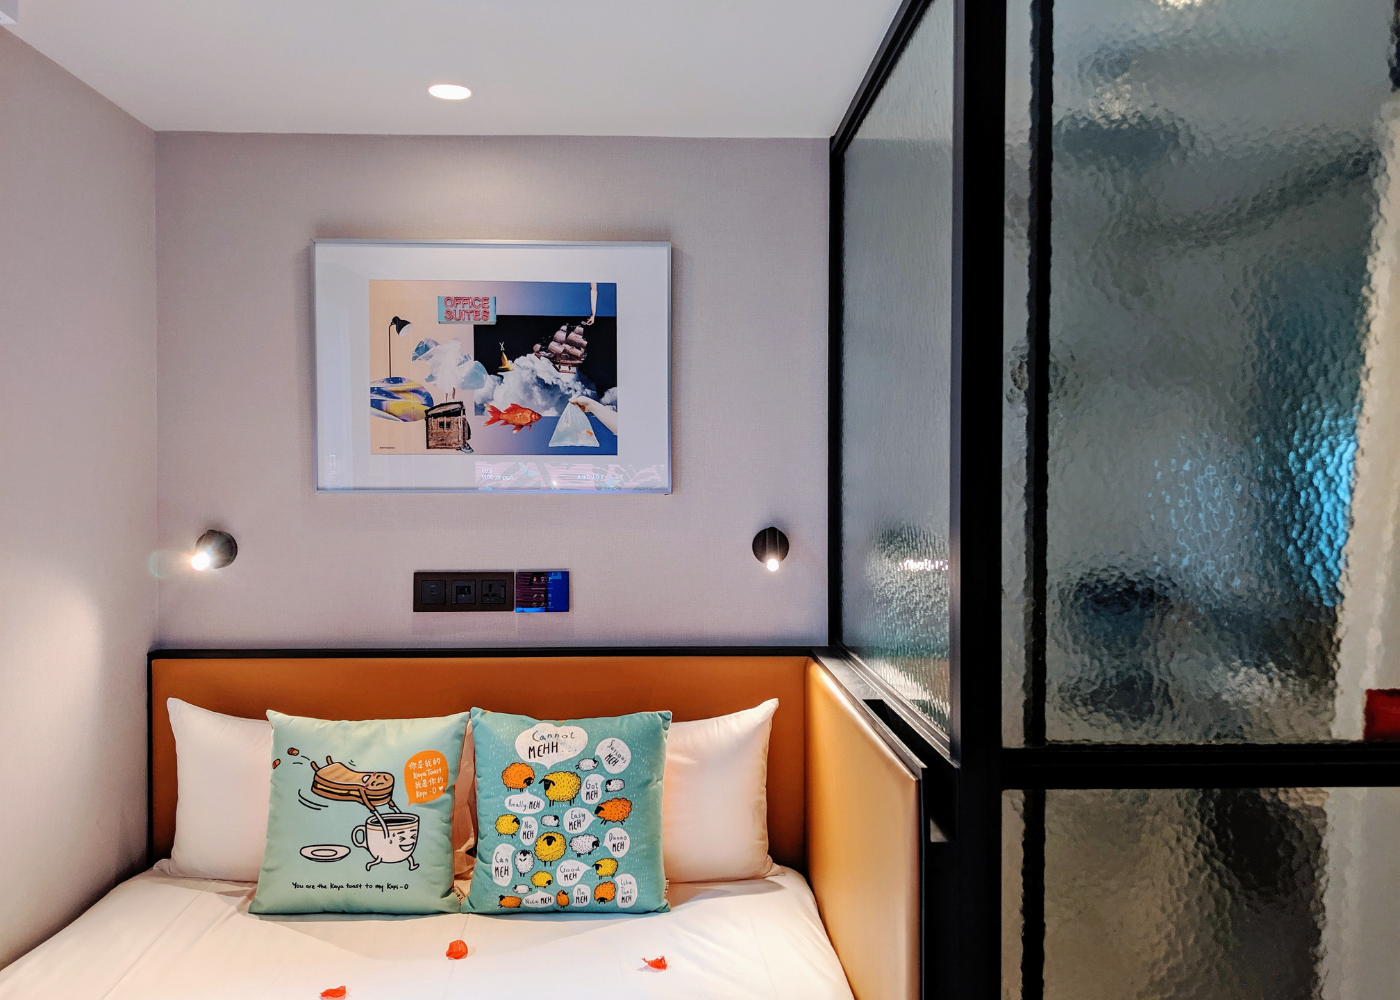 Control the mood lighting by your bed. Photography: Amelia Ang